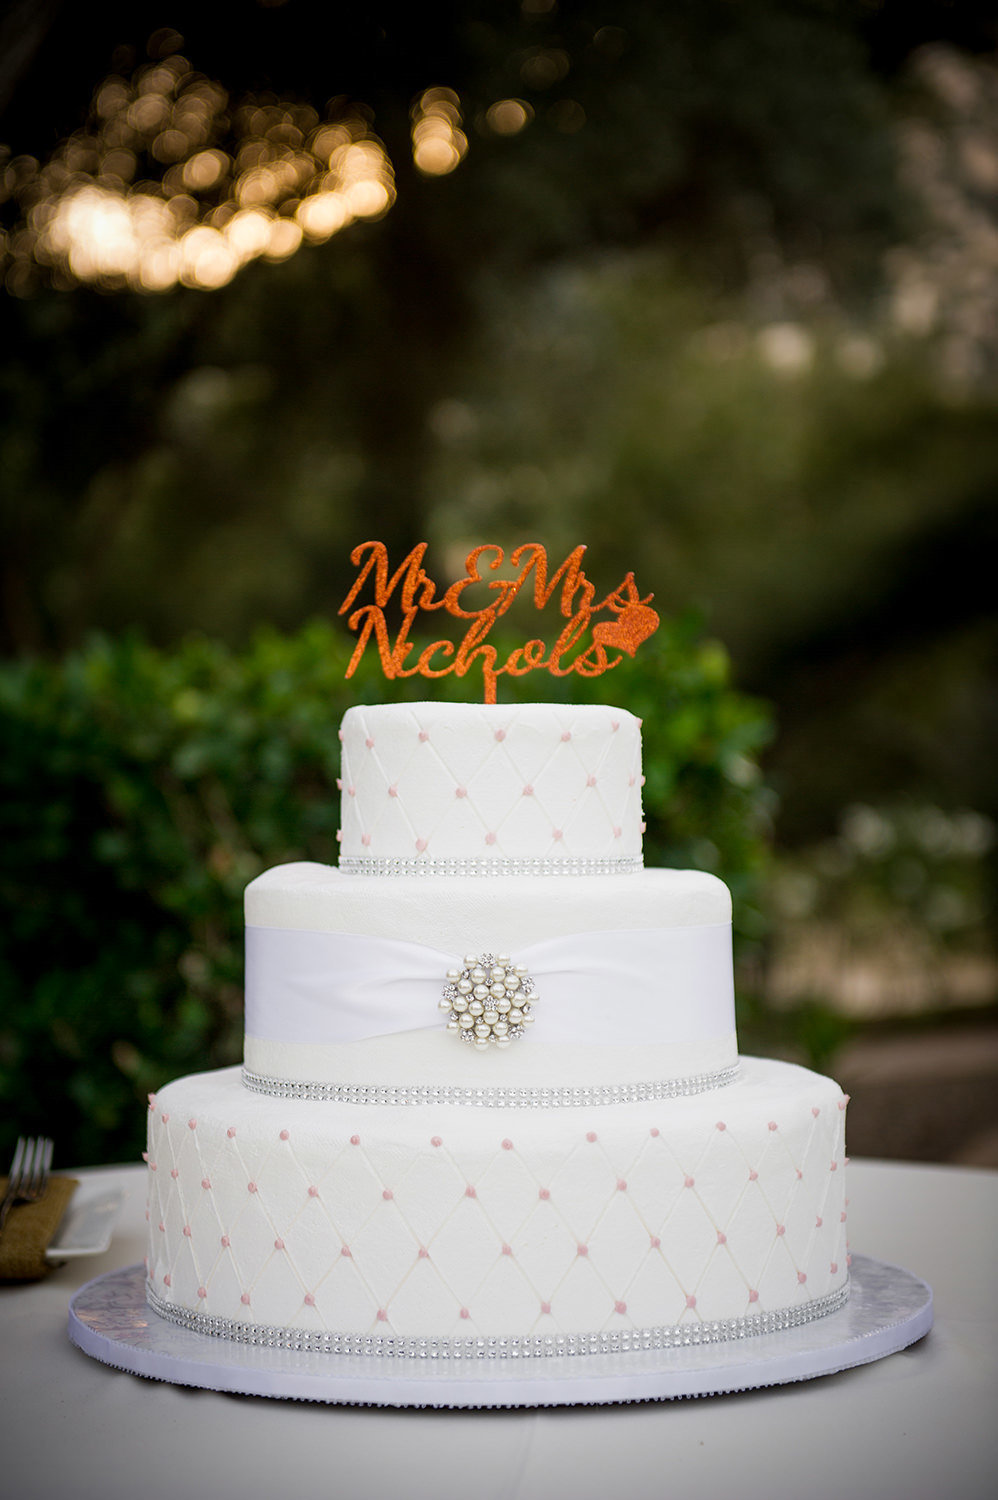 beautiful cake picture